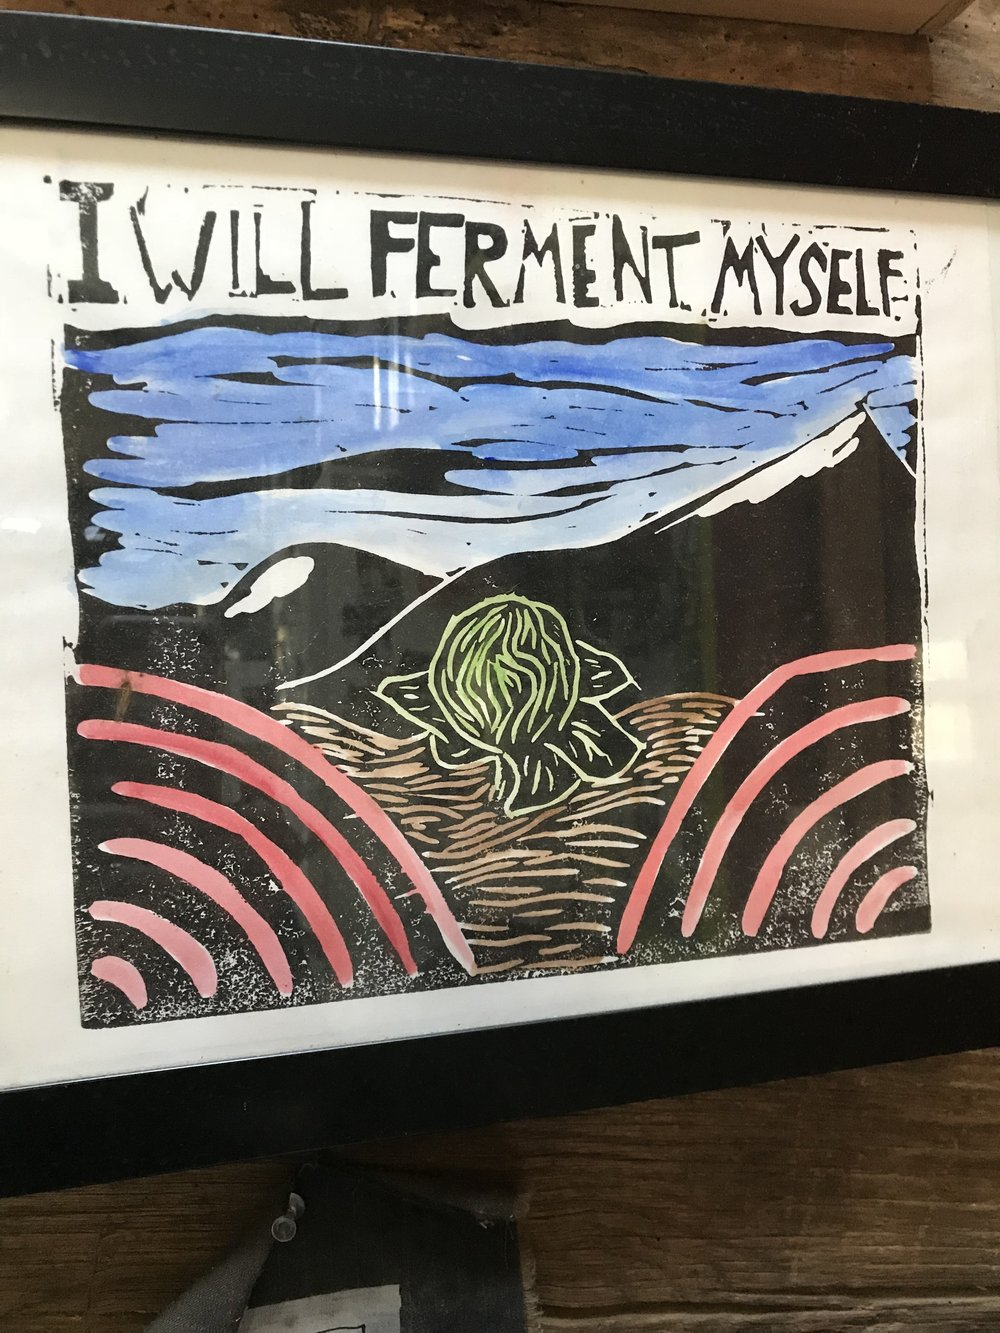 Sandor's ferment-related art